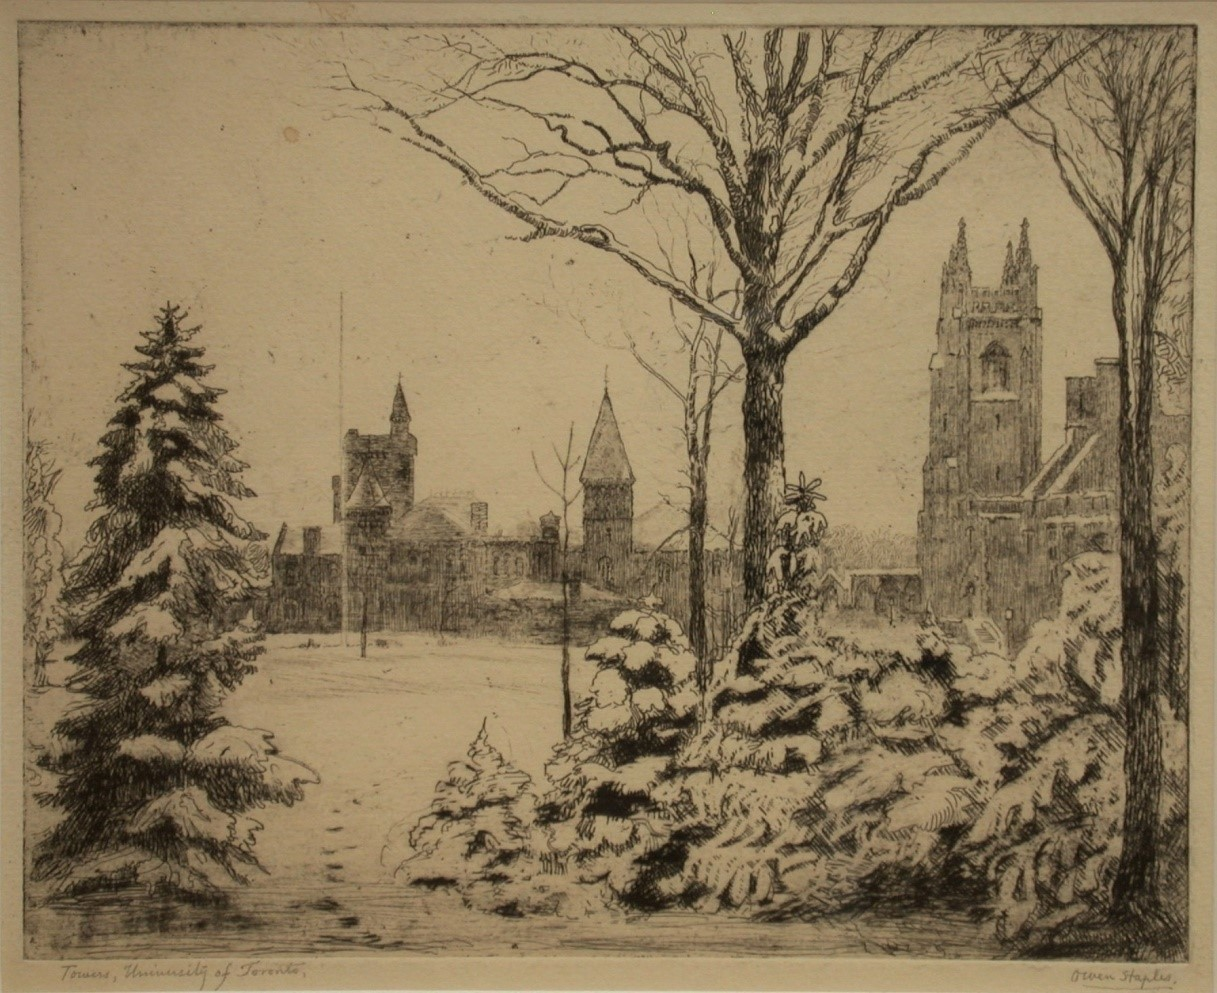 STAPLES, Owen [1866-1949].Towers, University of Toronto etching